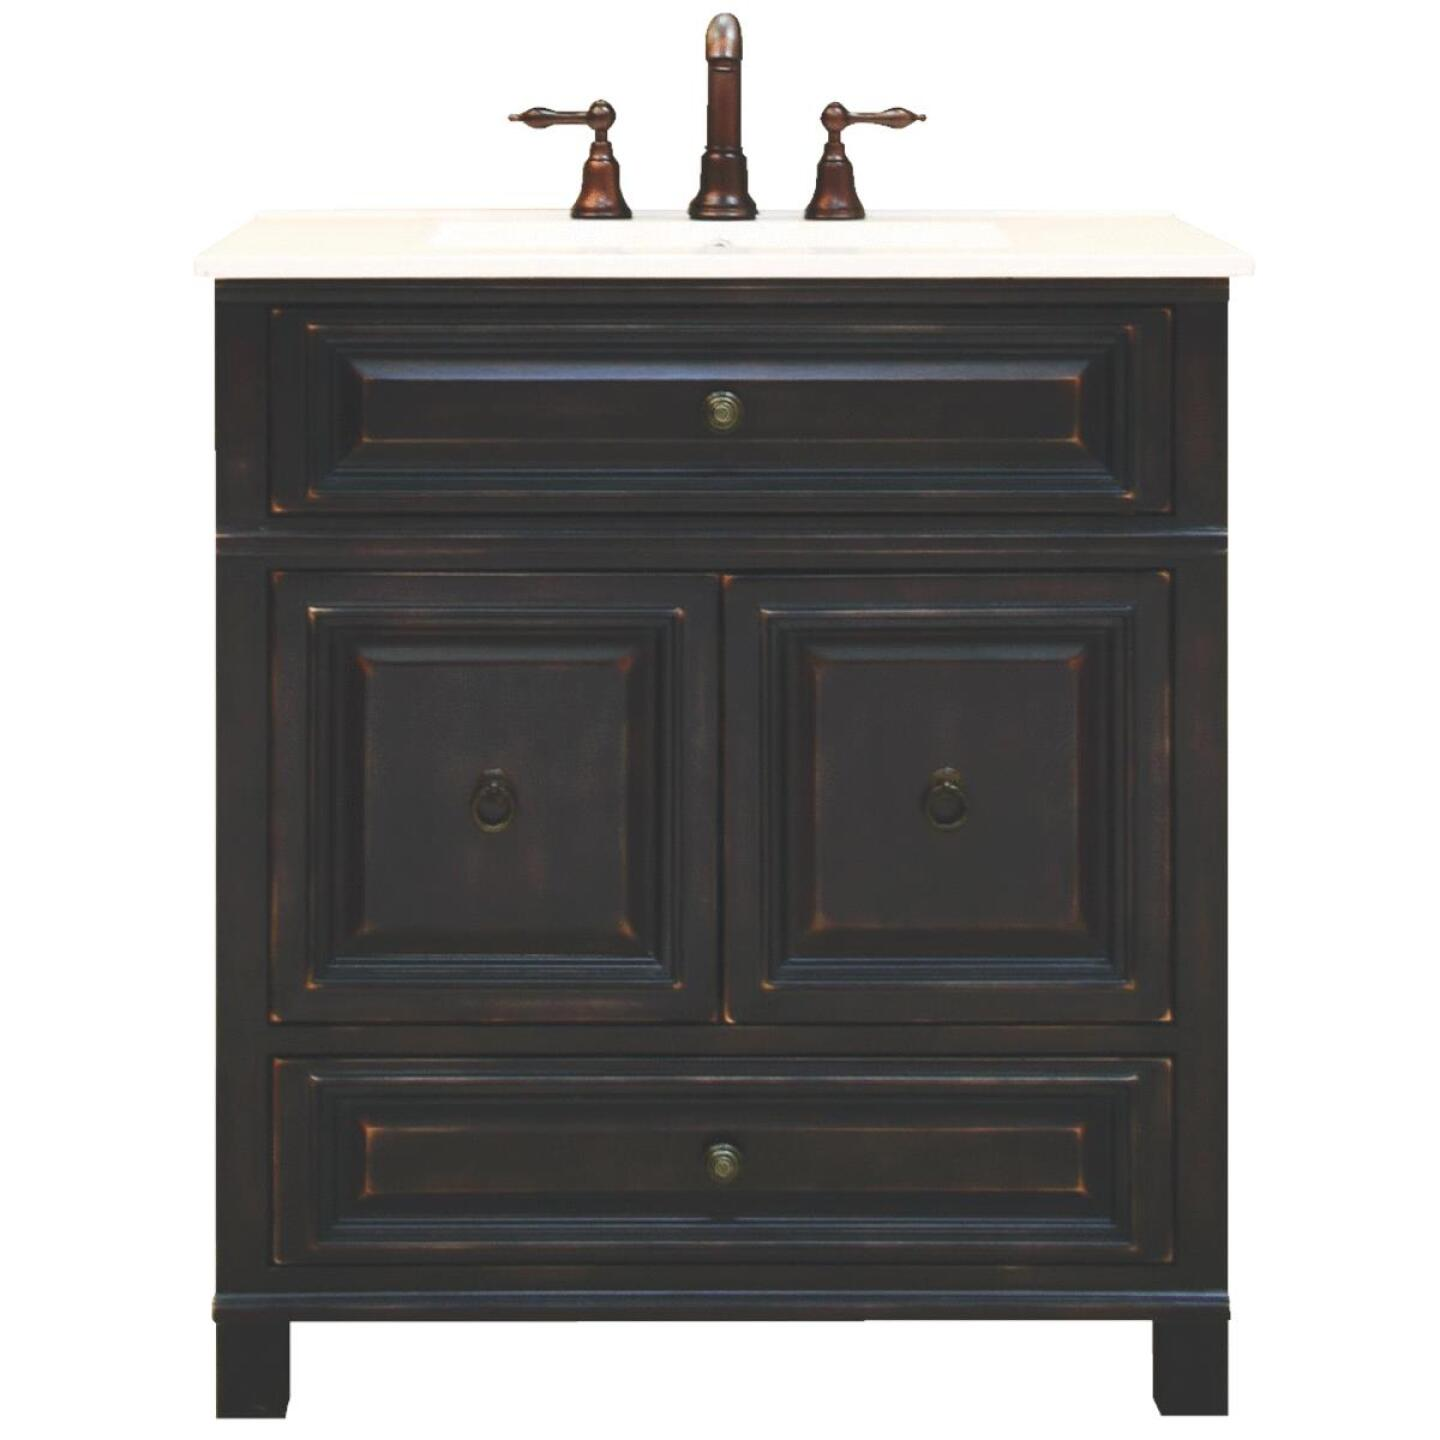 Sunny Wood Barton Hill Black Onyx 30 In. W x 34 In. H x 21 In. D Vanity Base, 2 Door/1 Drawer Image 19